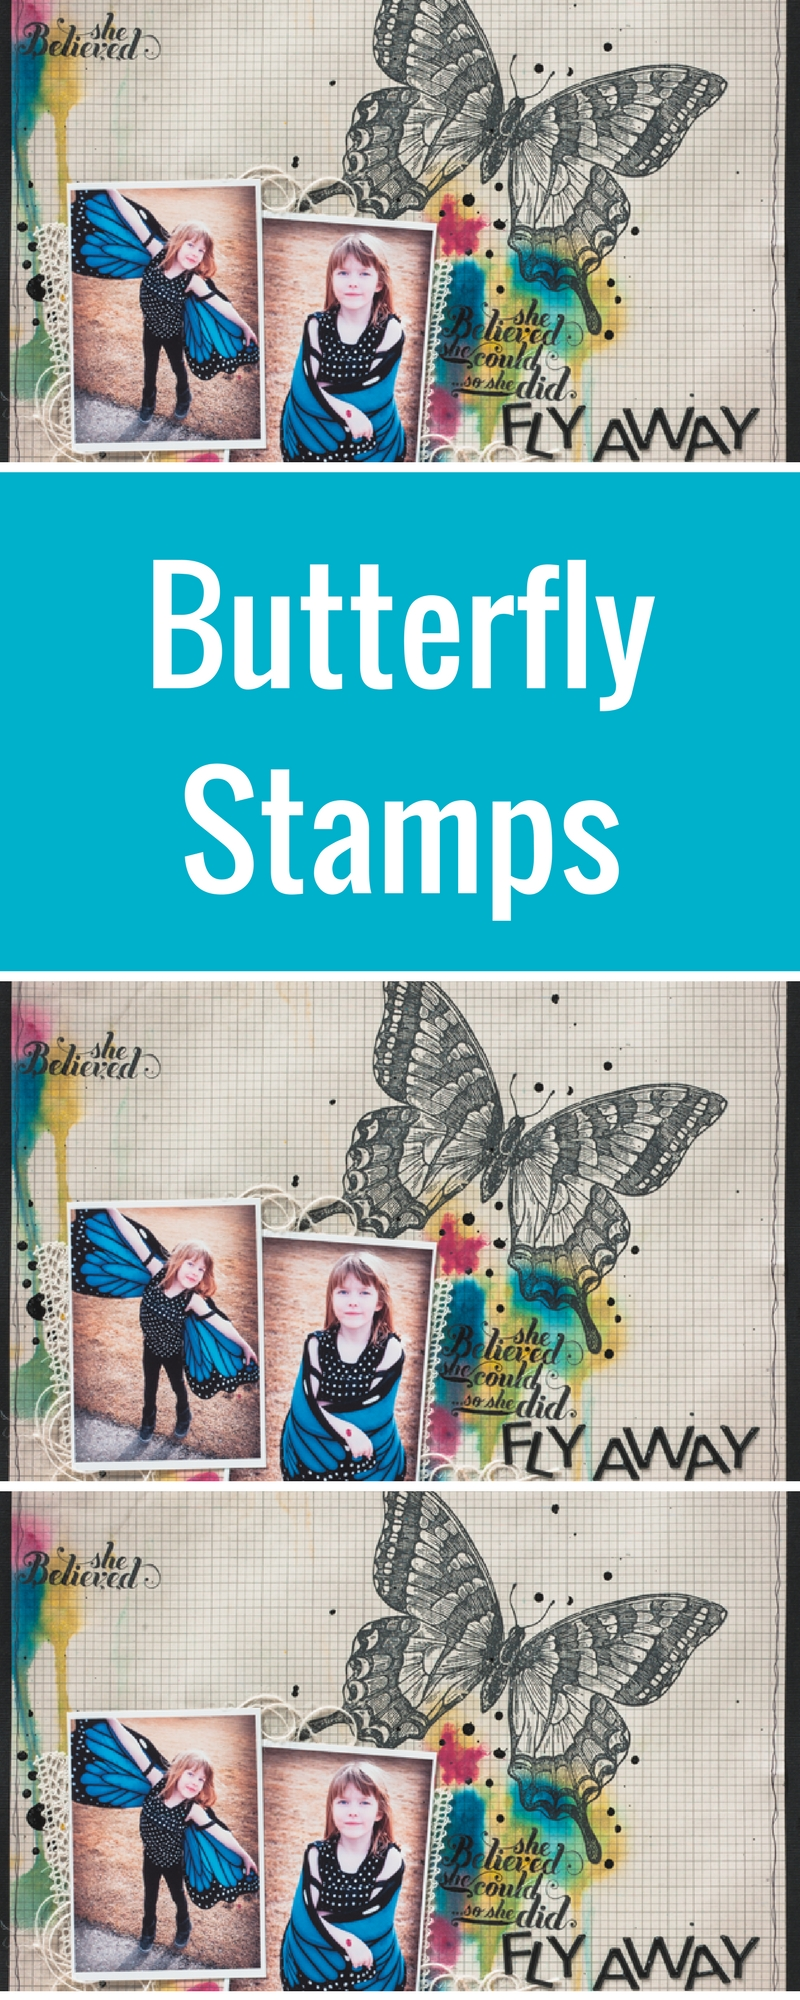 Scrapbook Layout | Scrapbooking Ideas | Butterfly Stamp by Stampin' Up! | Layout Designed by Christy Riopel | Featuring Izinks Distributed by Clearsnap | Creative Scrapbooker Magazine